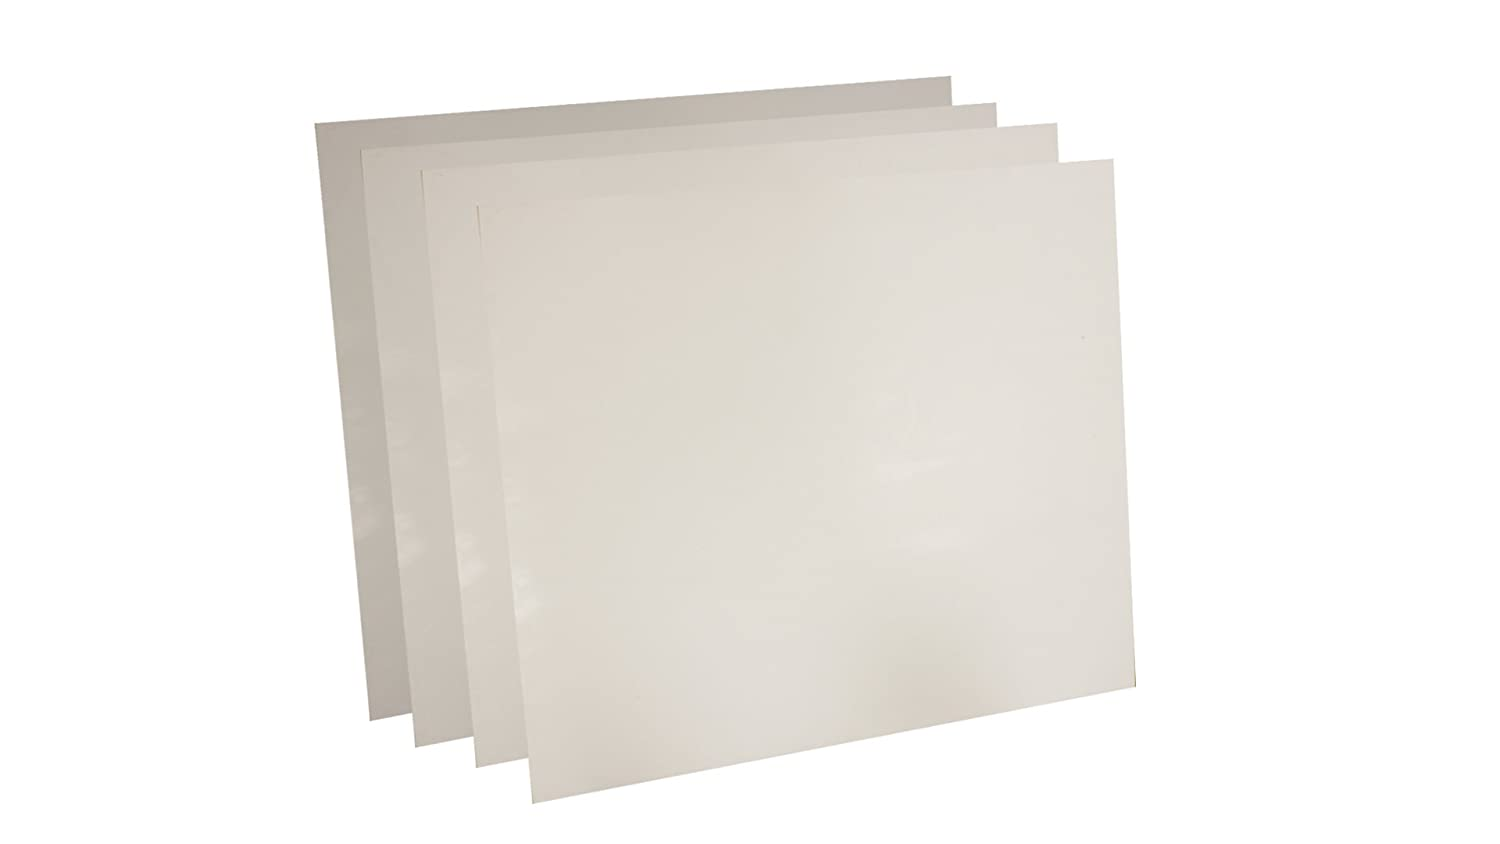 Sur-Seal Inc of NJ 1//16 Thick 6 x 6 Pack of 4 Pack of 4 6 x 6 Sterling Seal 7530.0626x6x4 White Virgin Teflon 7530 Sheet 1//16 Thick